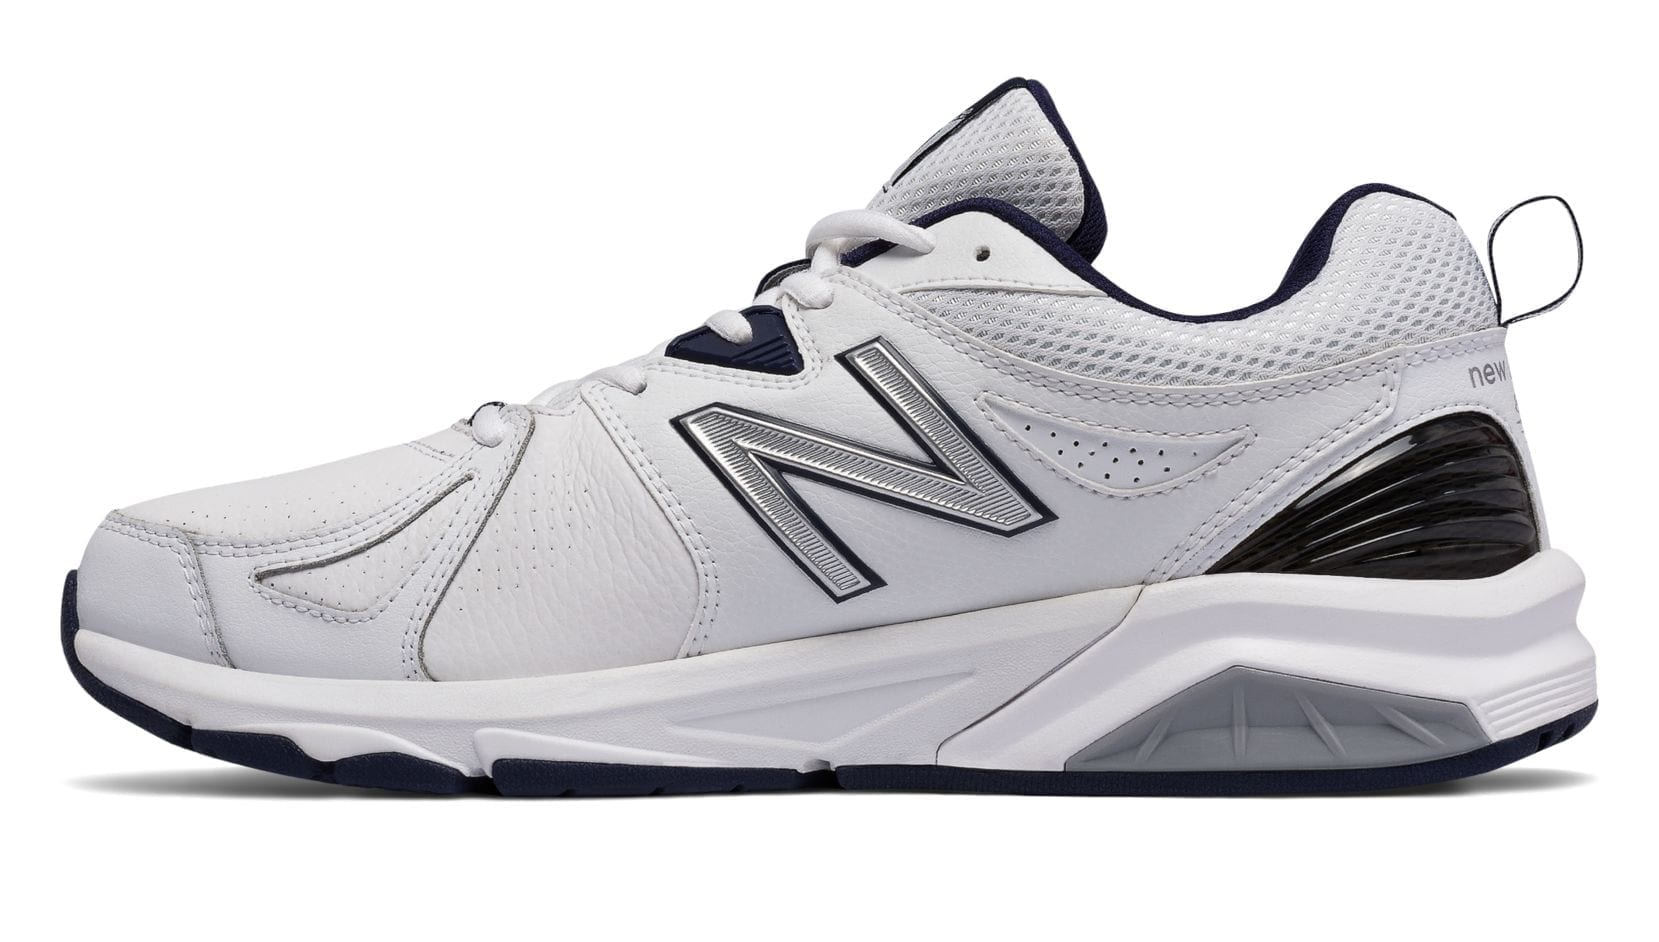 New Balance 857 4E mens shoes (White)